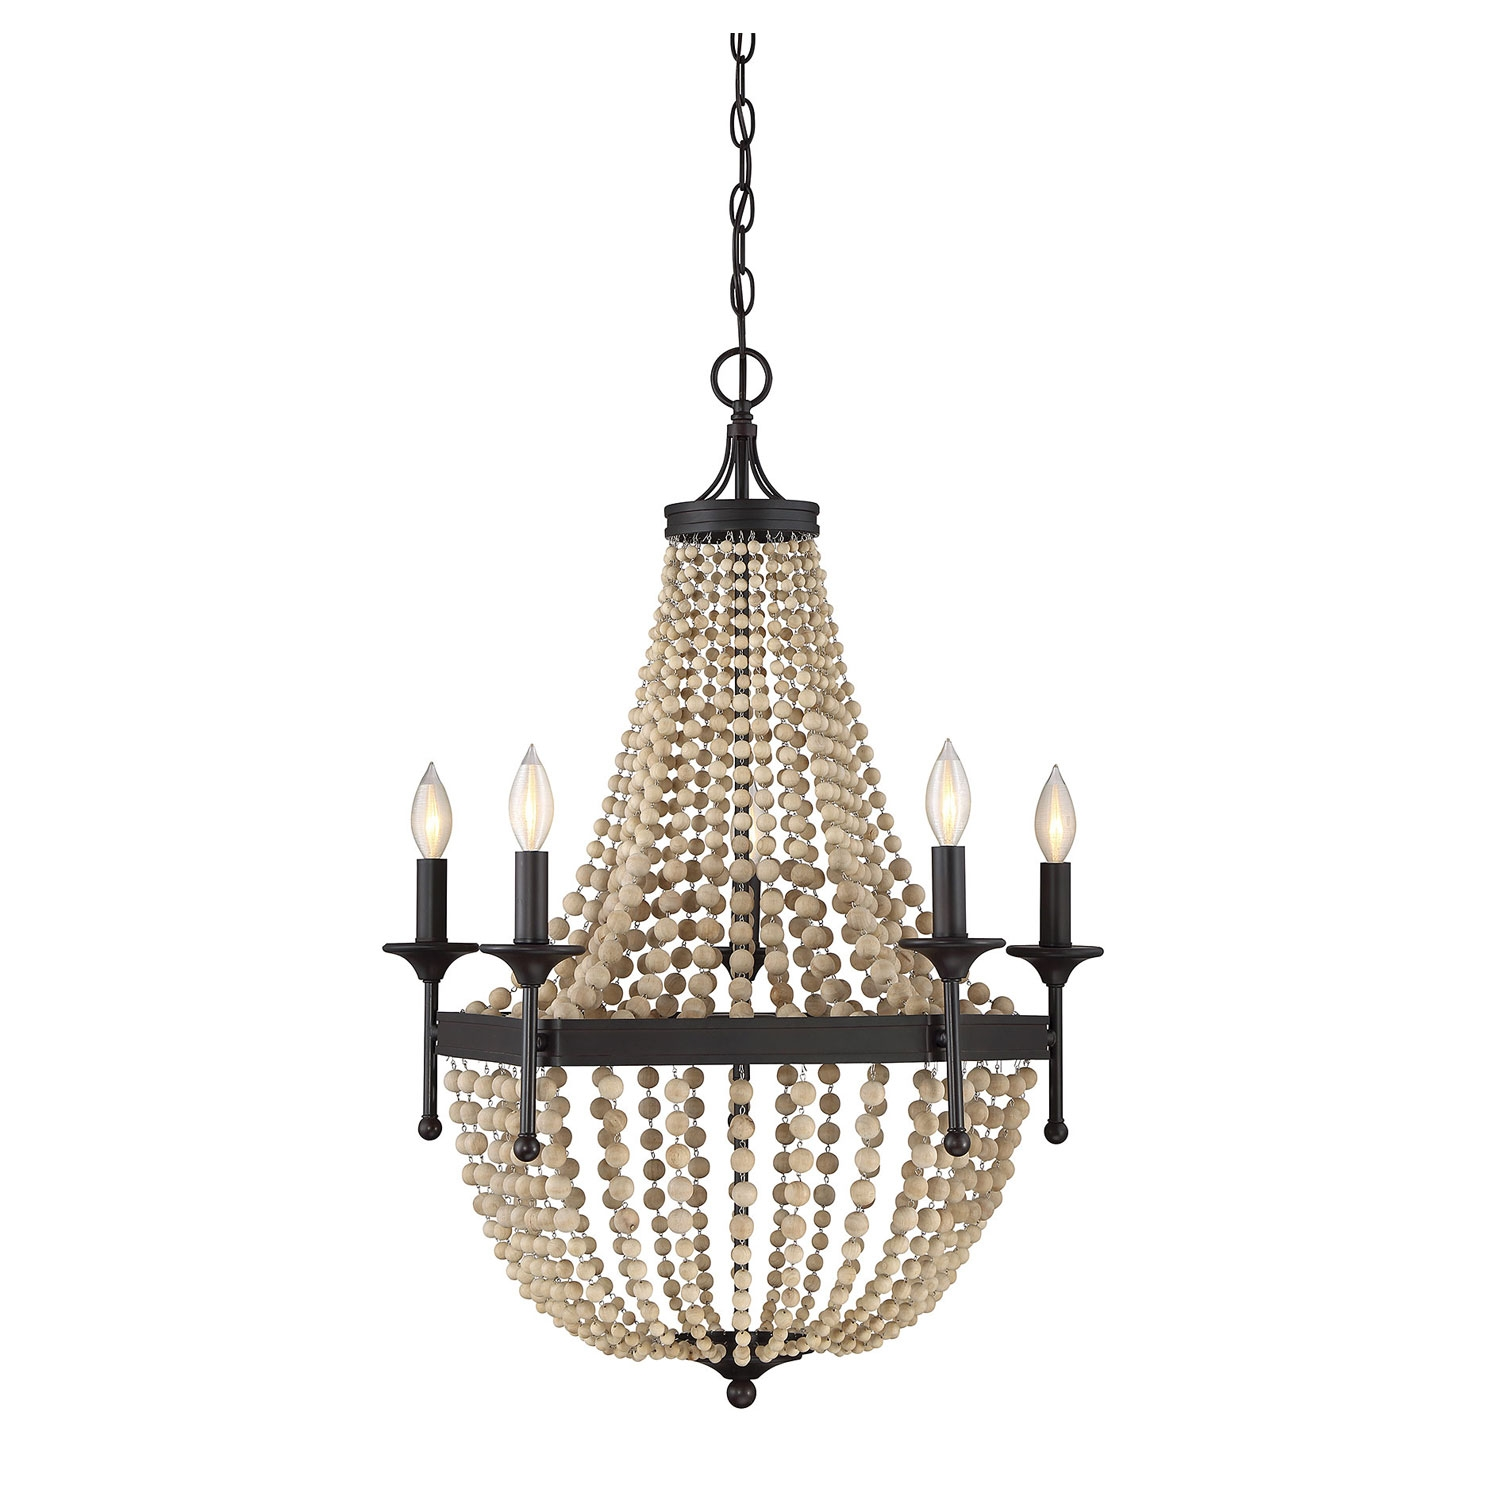 Chandeliers Crystal Modern Iron Shab Chic Country French Throughout French Chandeliers (Image 4 of 15)